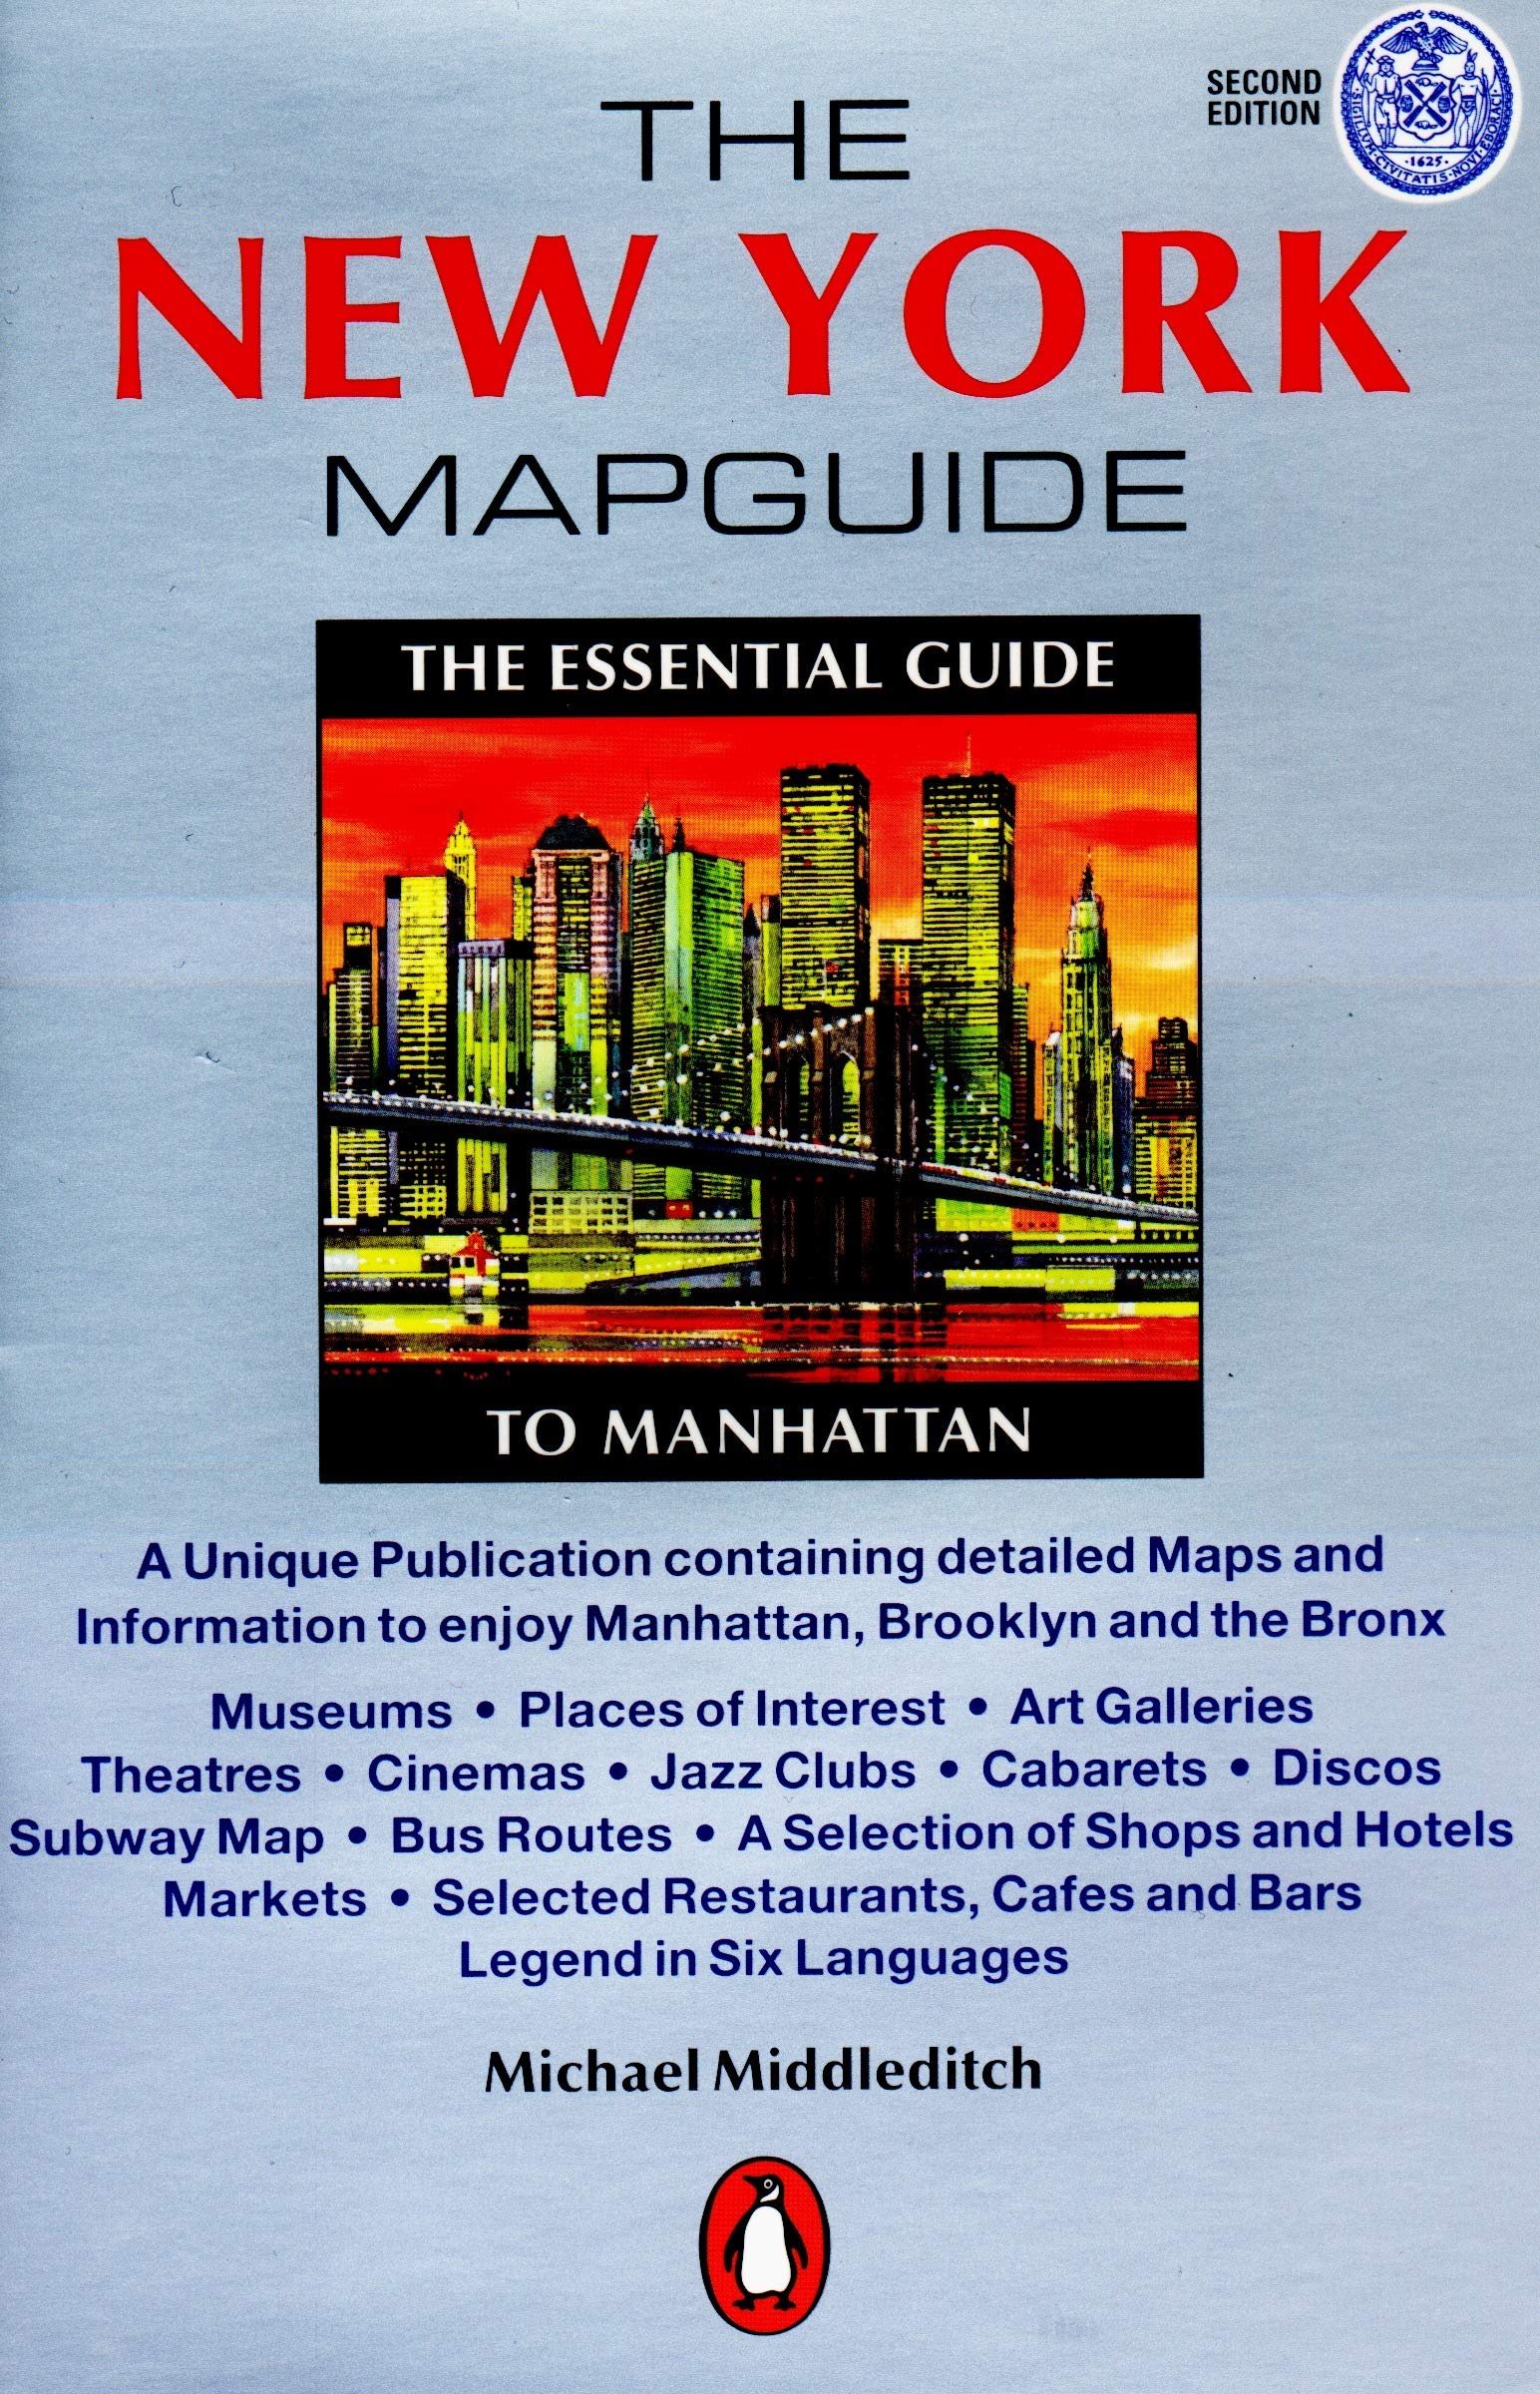 Map Of New York 2001.The New York Mapguide Second Edition Michael Middleditch